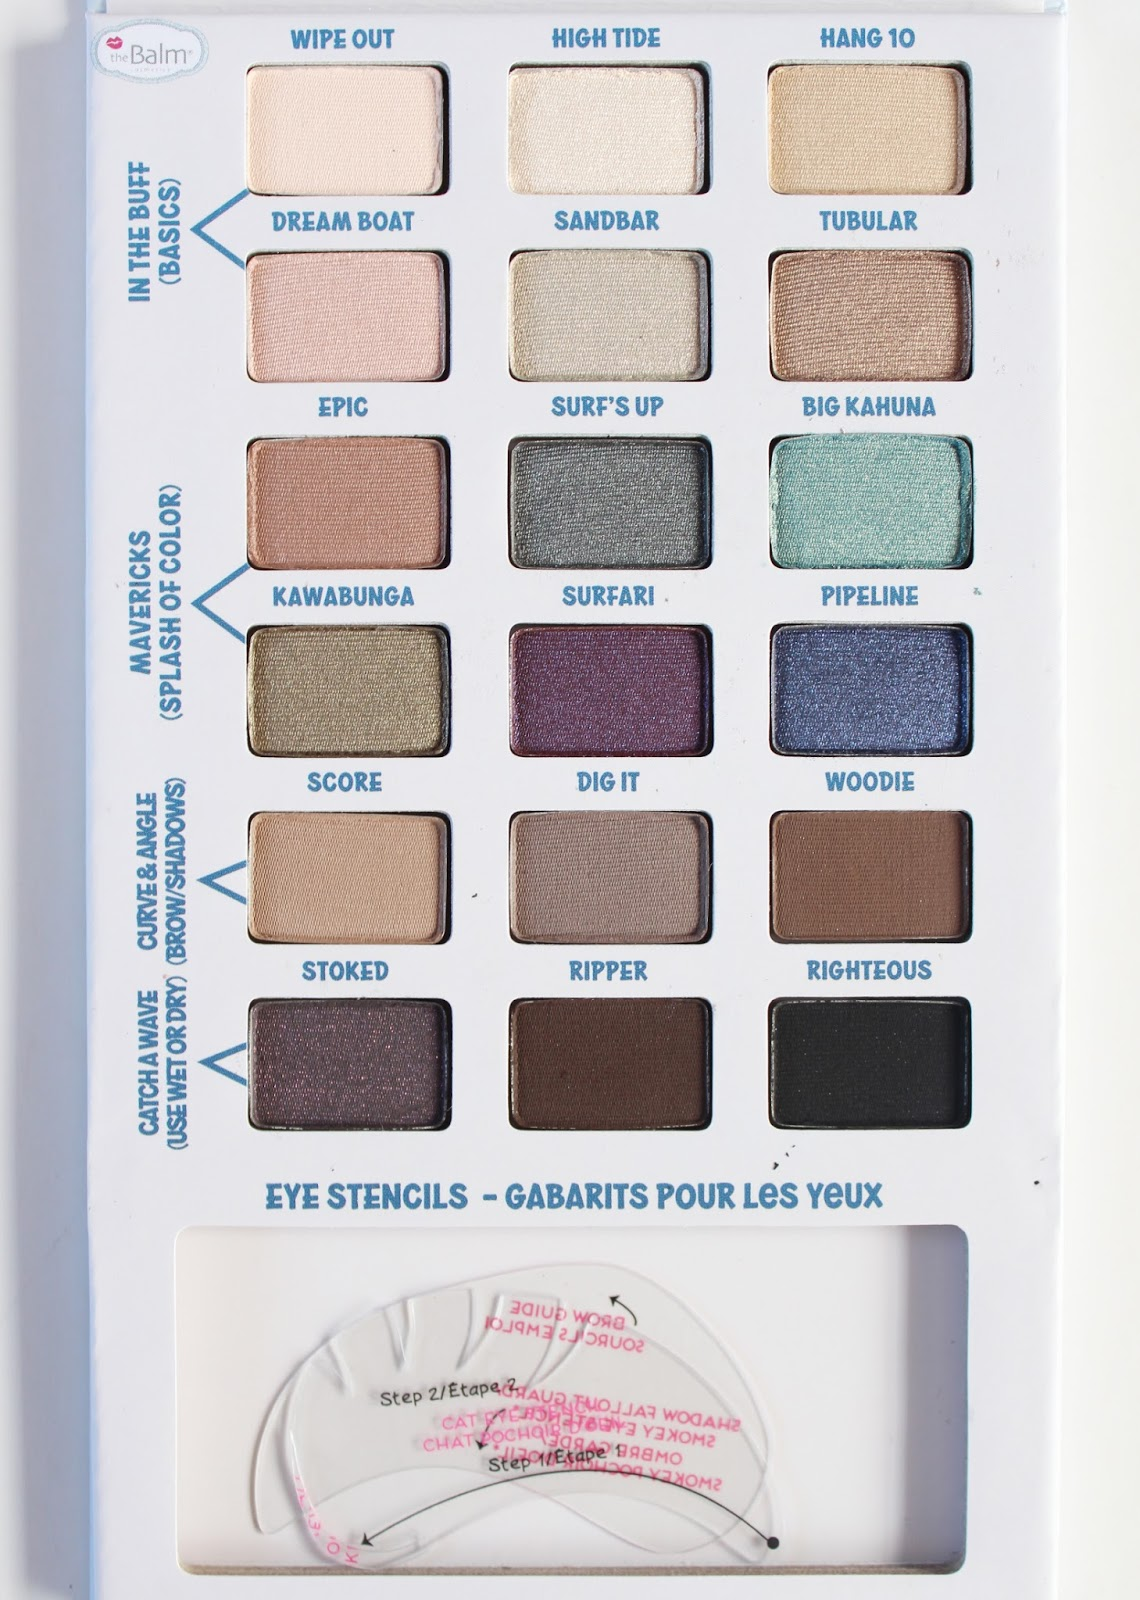 THEBALM | Balmsai Eyeshadow + Brow Palette - Review + Swatches - CassandraMyee